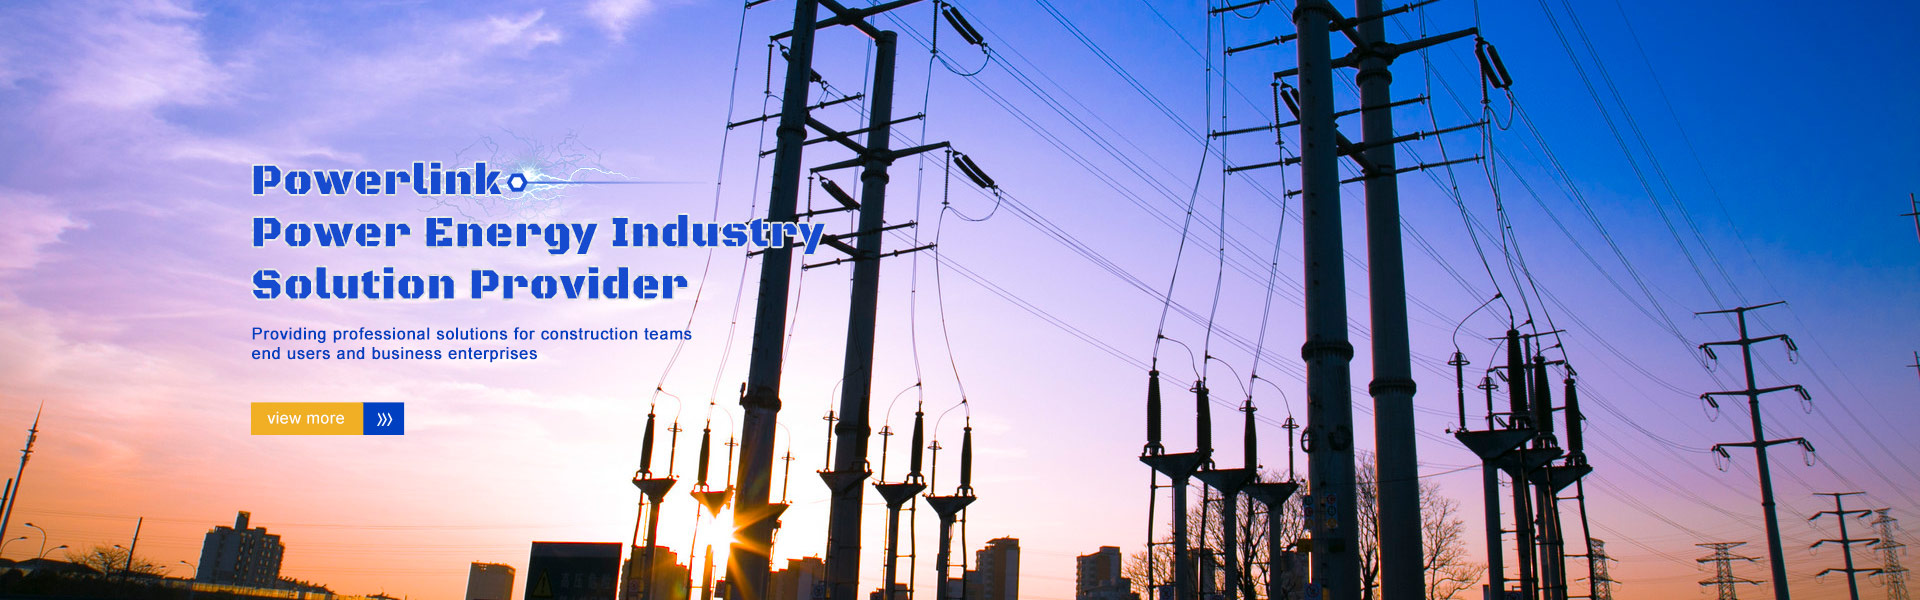 Powerlink Power Energy Industry  Solution Provider